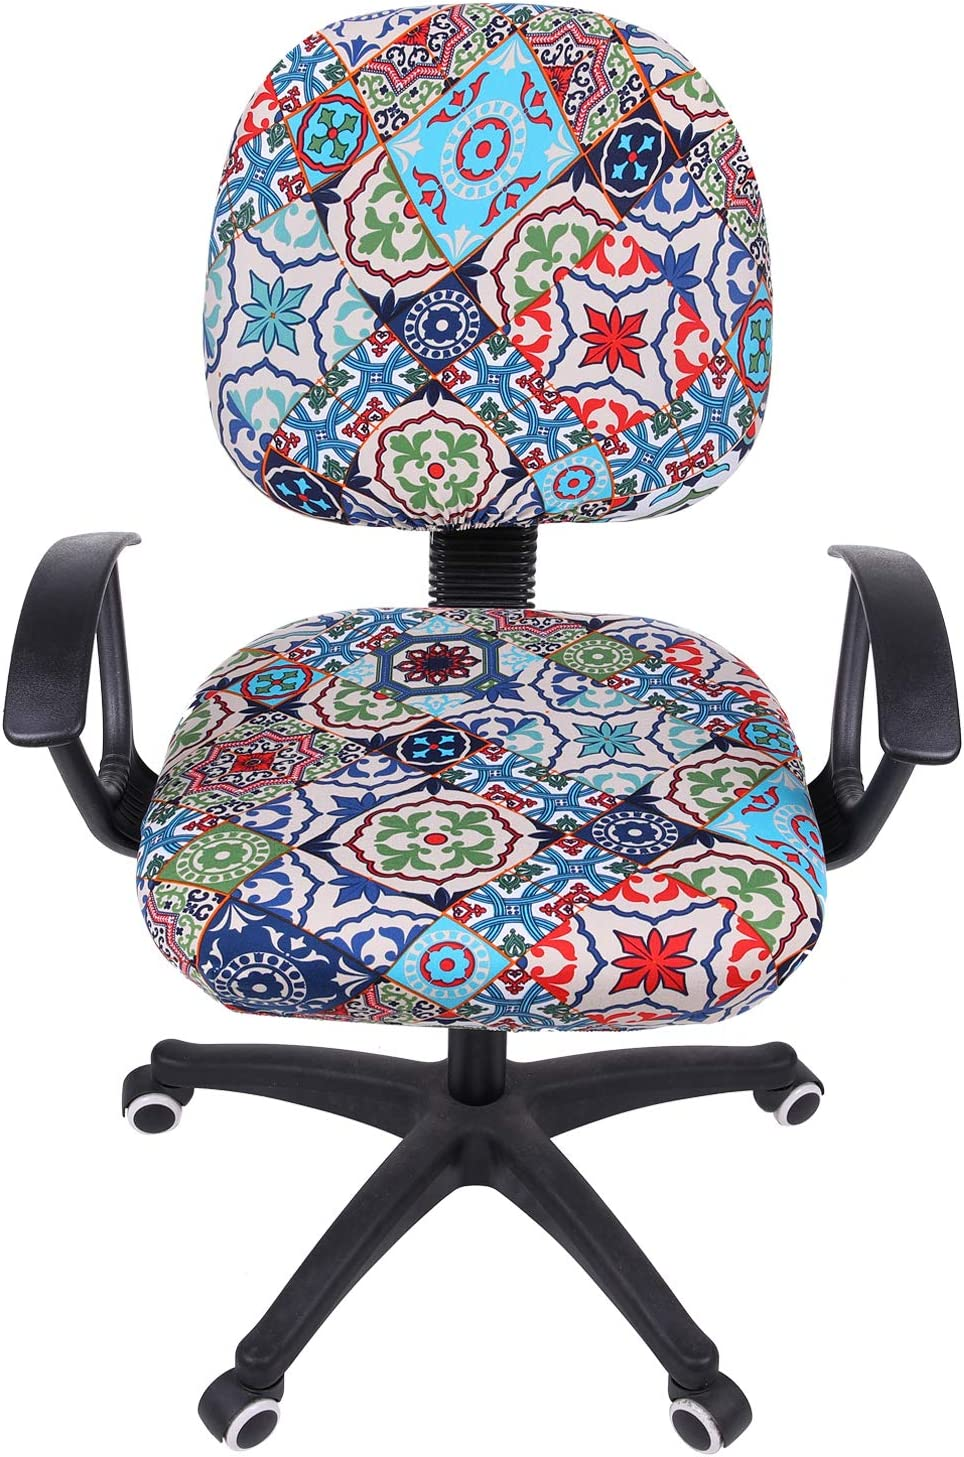 smiry Stretch Print Computer Office Chair Cover, Removable Washable Universal Desk Rotating Chair Slipcover, Colorful Vintage